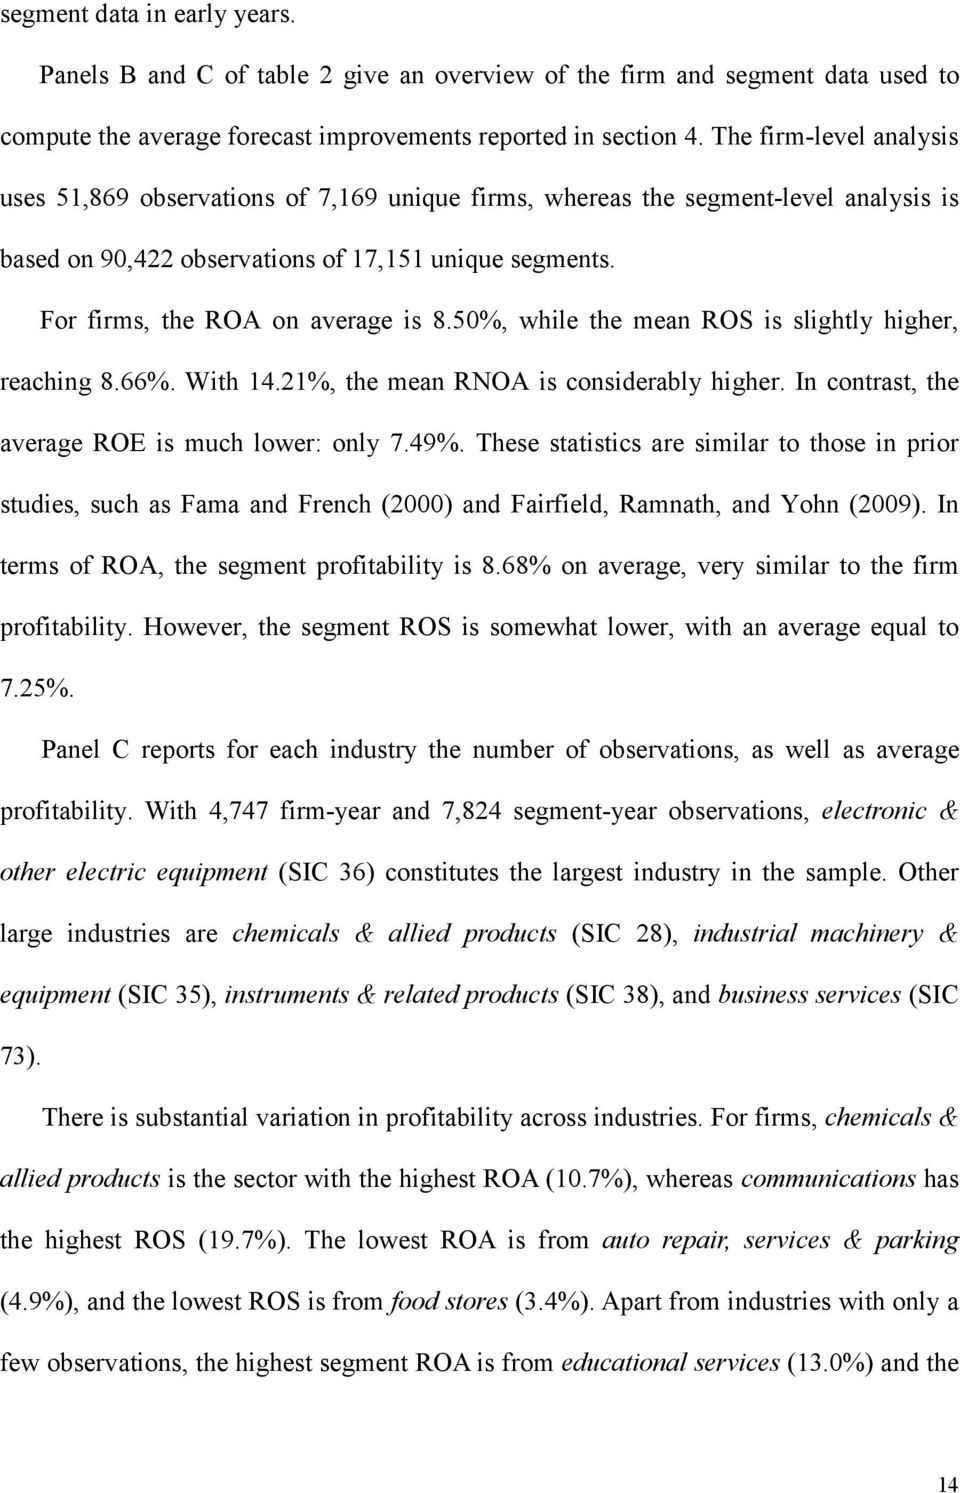 For firms, the ROA on average is 8.50%, while the mean ROS is slightly higher, reaching 8.66%. With 14.21%, the mean RNOA is considerably higher. In contrast, the average ROE is much lower: only 7.